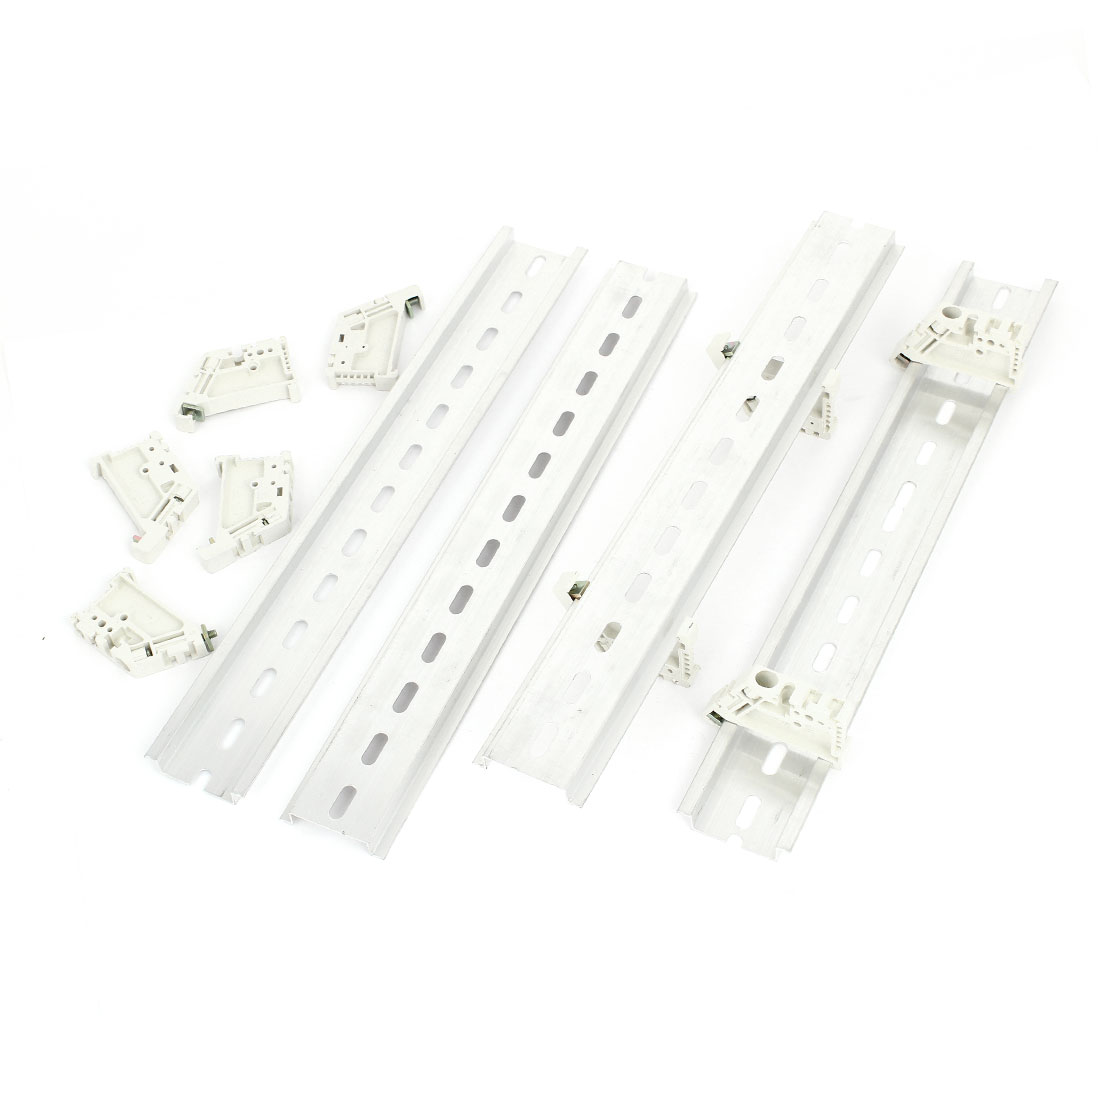 "4 Sets 10"" 250mm Long Slotted Aluminum DIN Rail + Plastic End Stoppers"